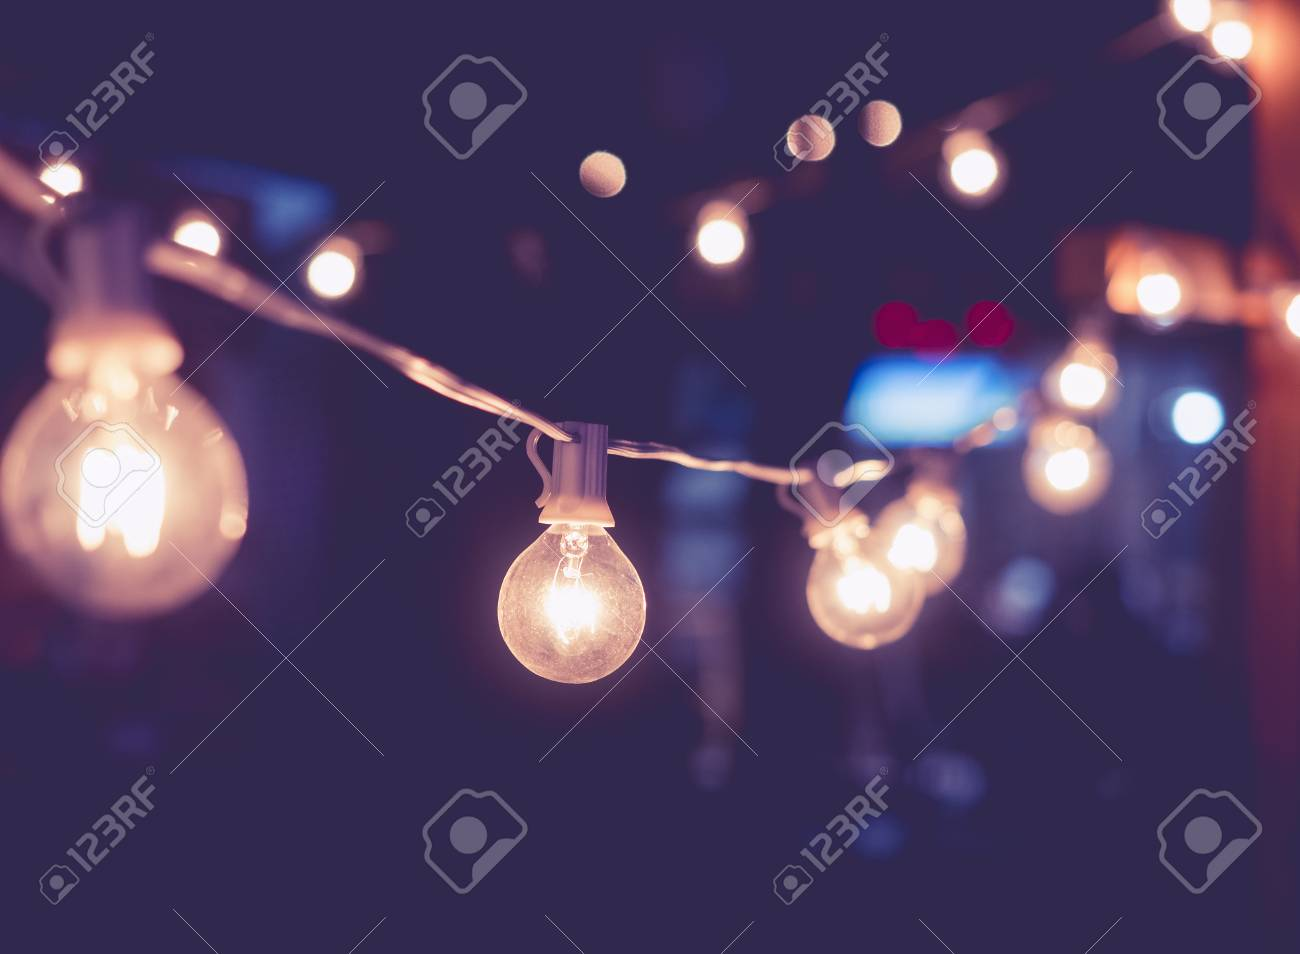 Light decoration Event Festival outdoor Vintage Holiday Background